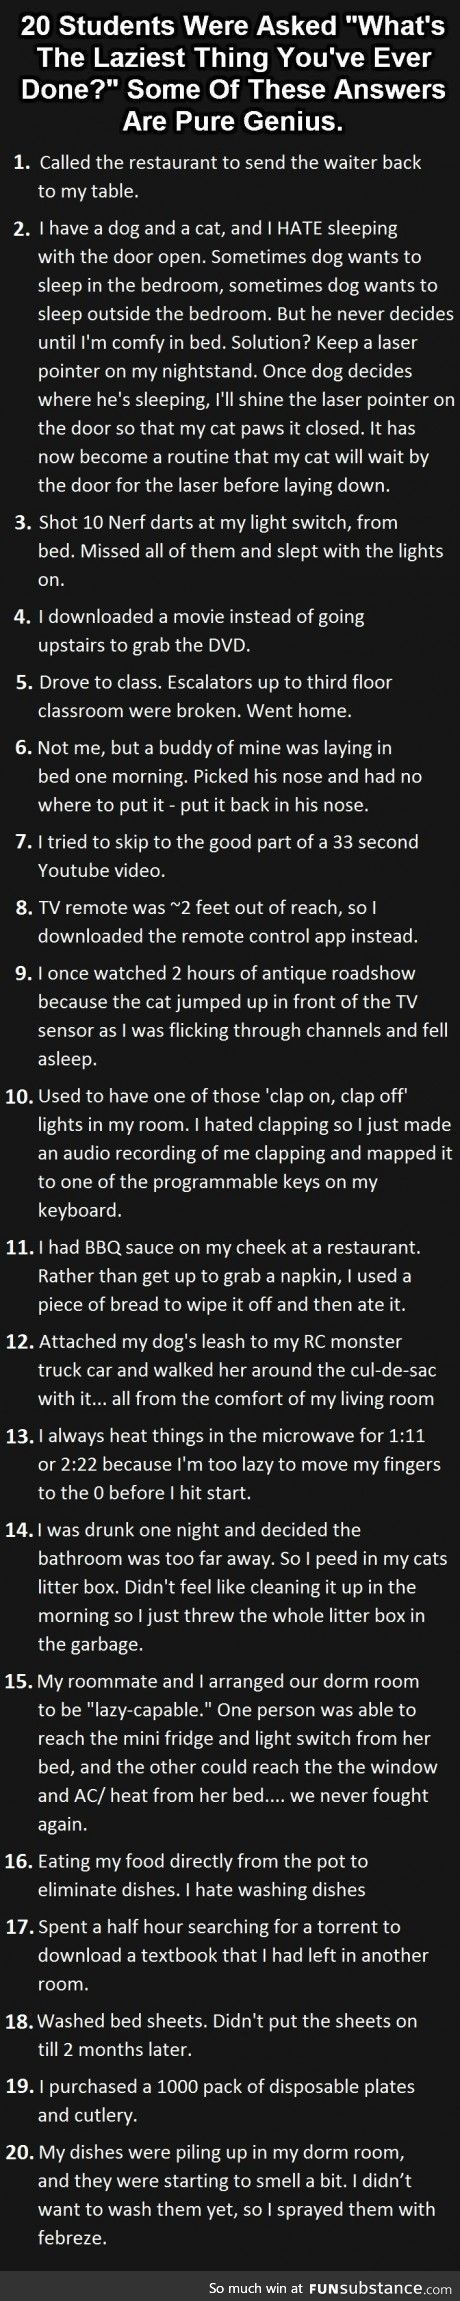 Laziest Thing You've Ever Done? Hahaha definitely worth reading!